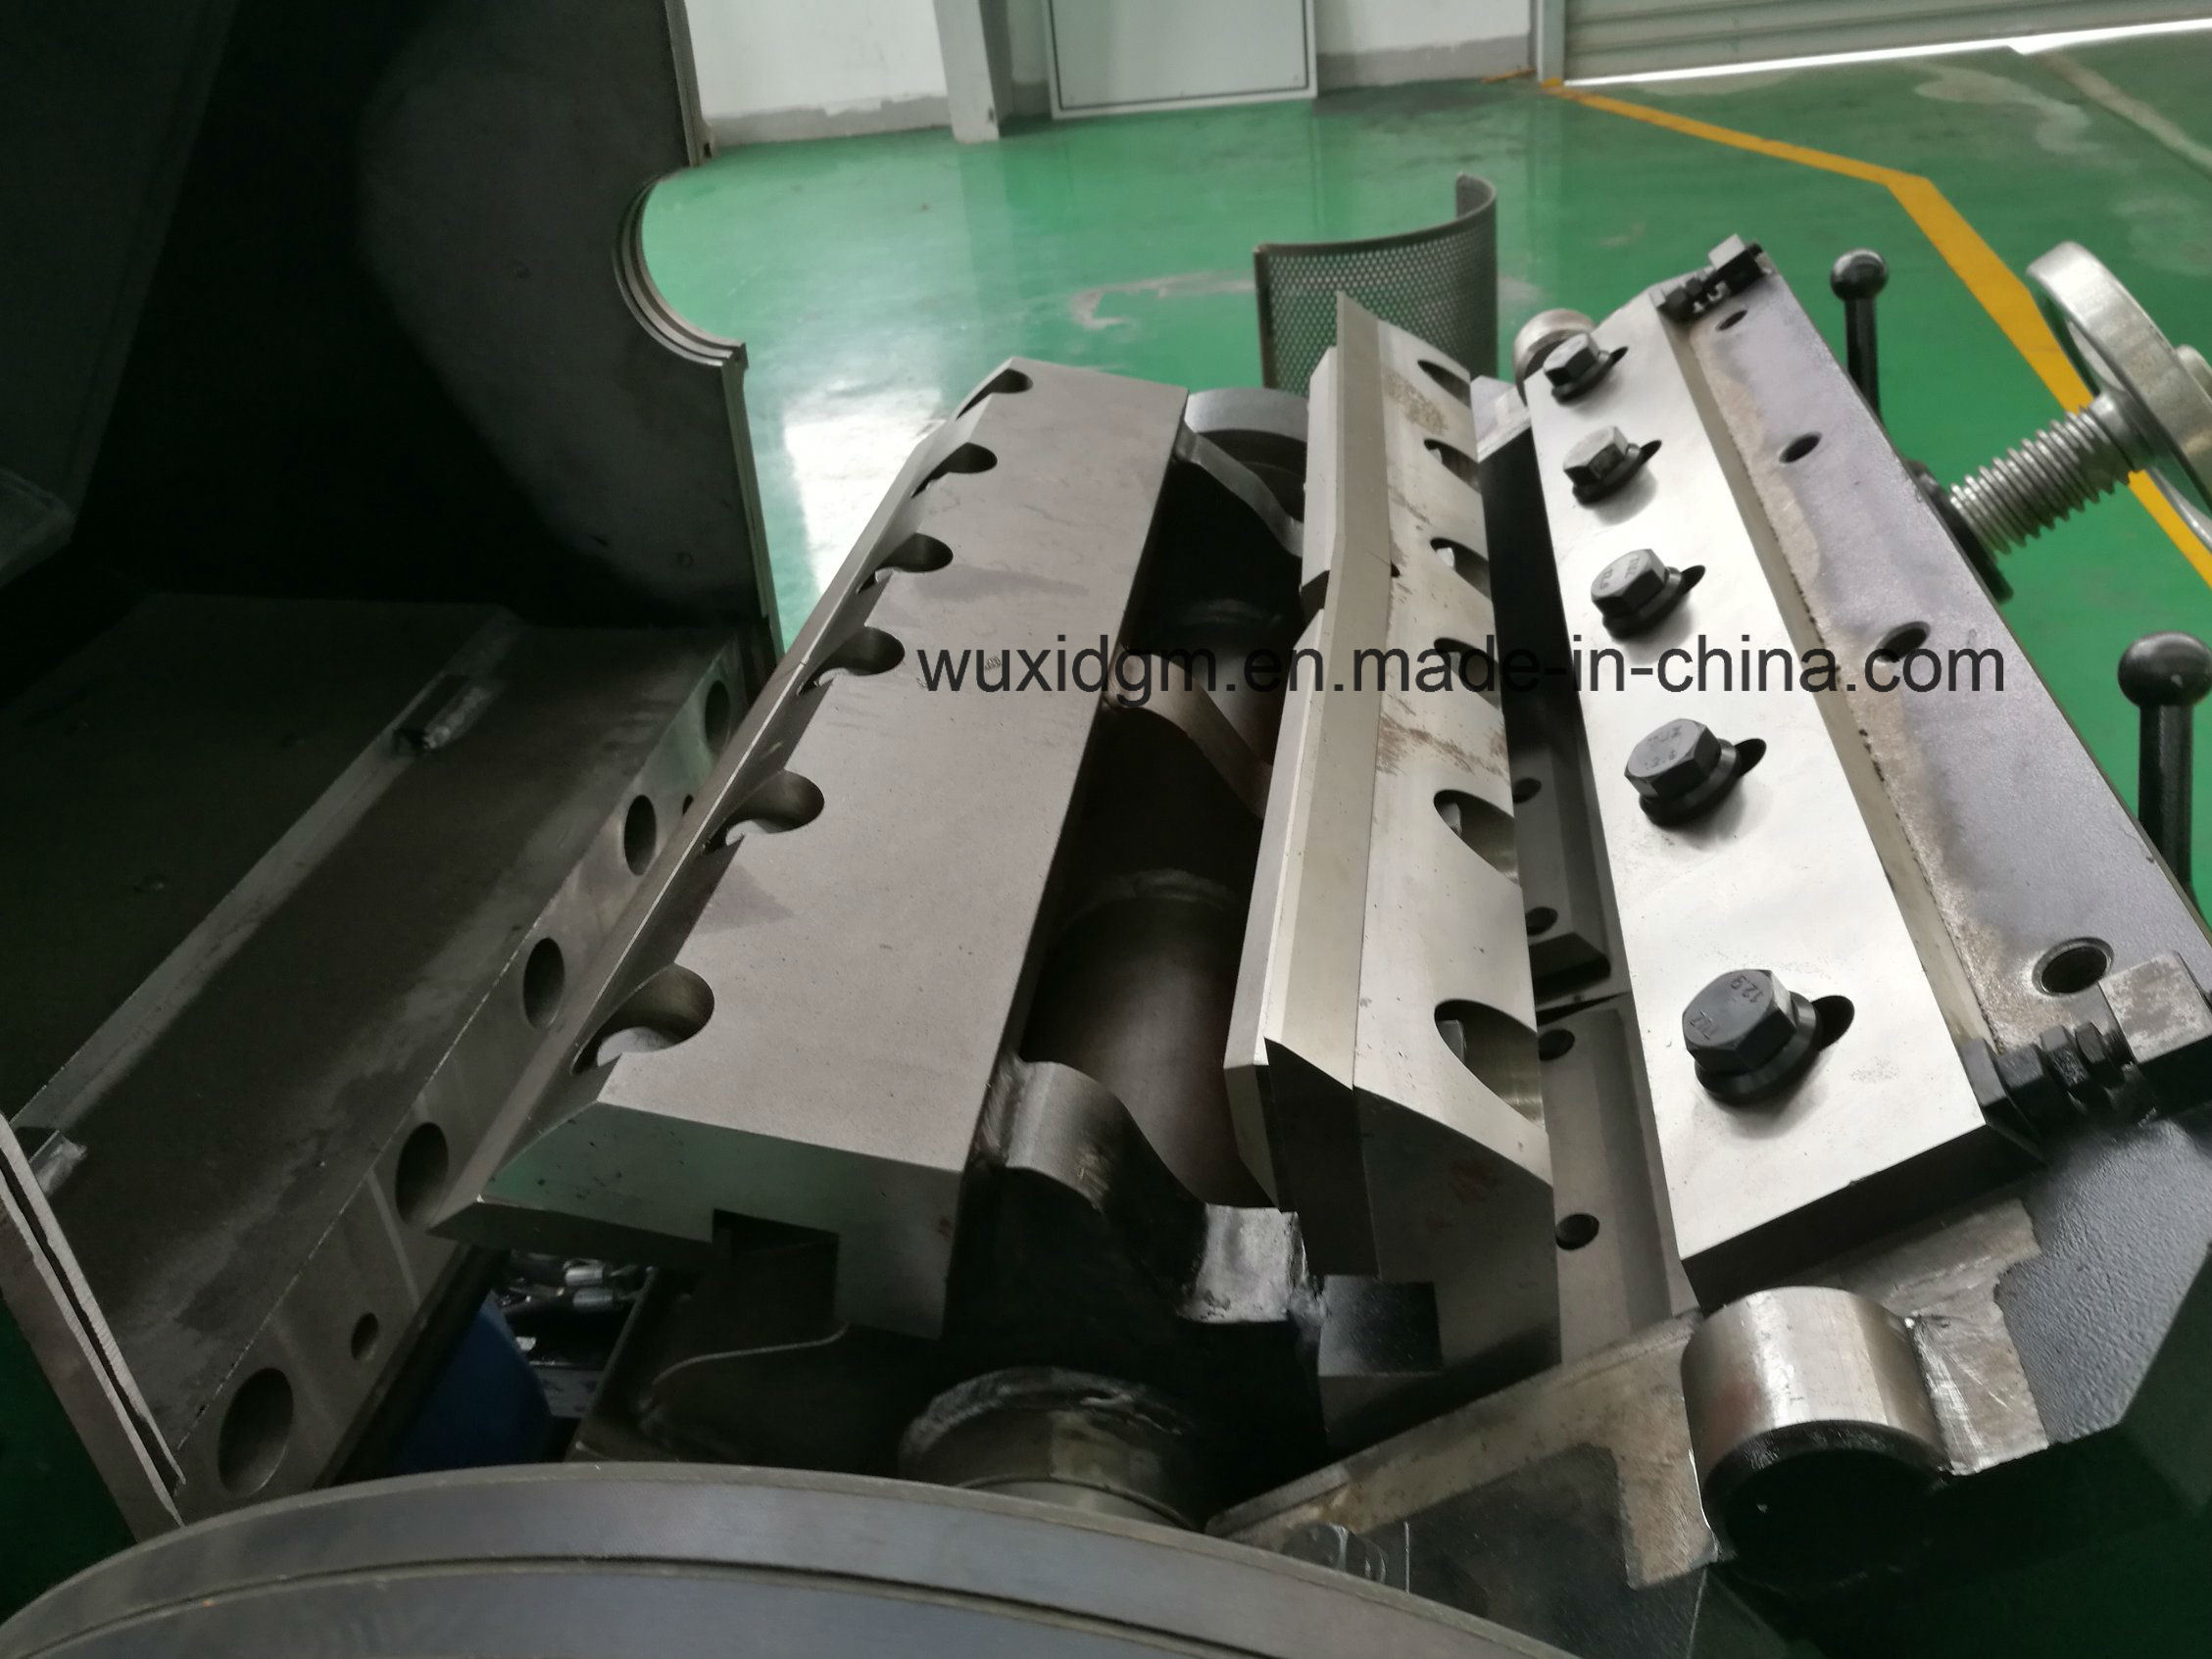 Dge700700 Economical Granulator Increase Value of Your Materials